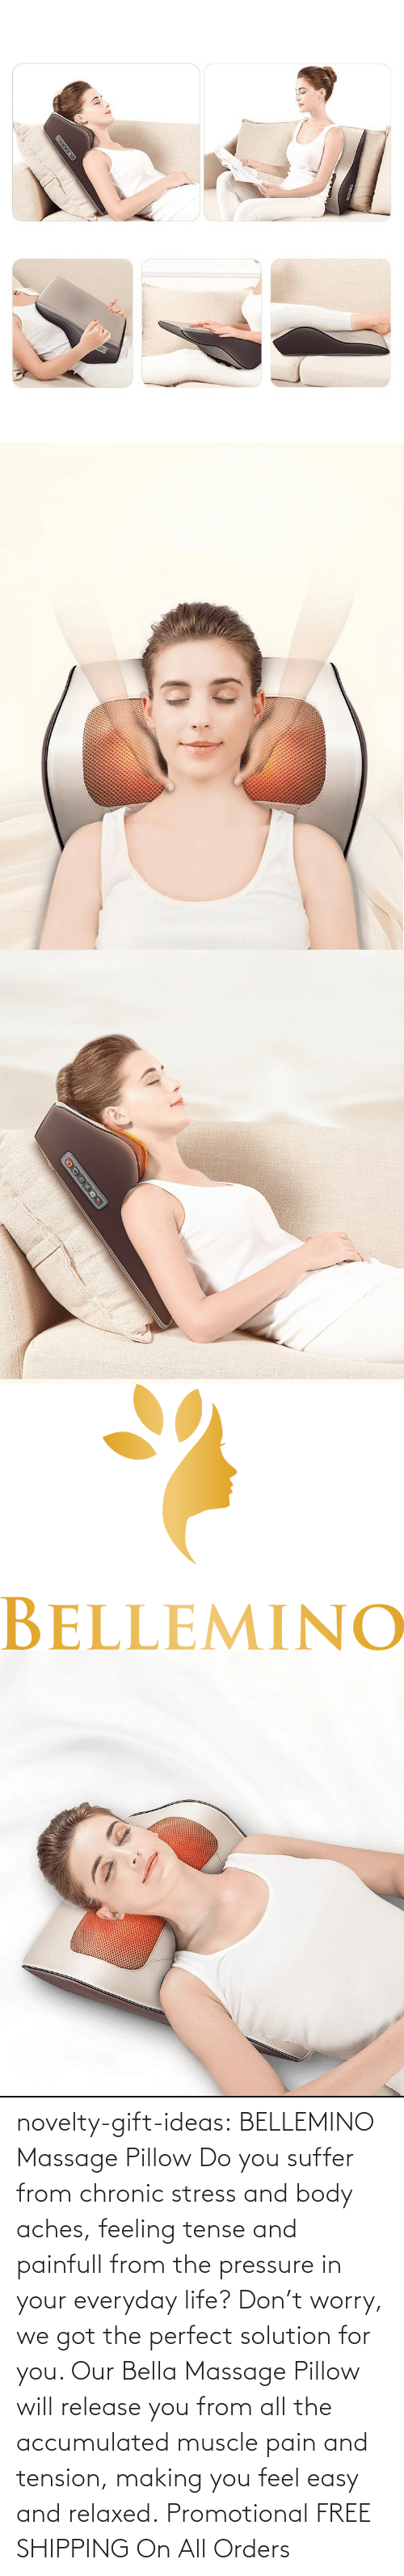 suffer: novelty-gift-ideas:   BELLEMINO Massage Pillow     Do you suffer from chronic stress and body aches, feeling tense and painfull from the pressure in your everyday life? Don't worry, we got the perfect solution for you. Our Bella Massage Pillow will release you from all the accumulated muscle pain and tension, making you feel easy and relaxed.     Promotional FREE SHIPPING On All Orders